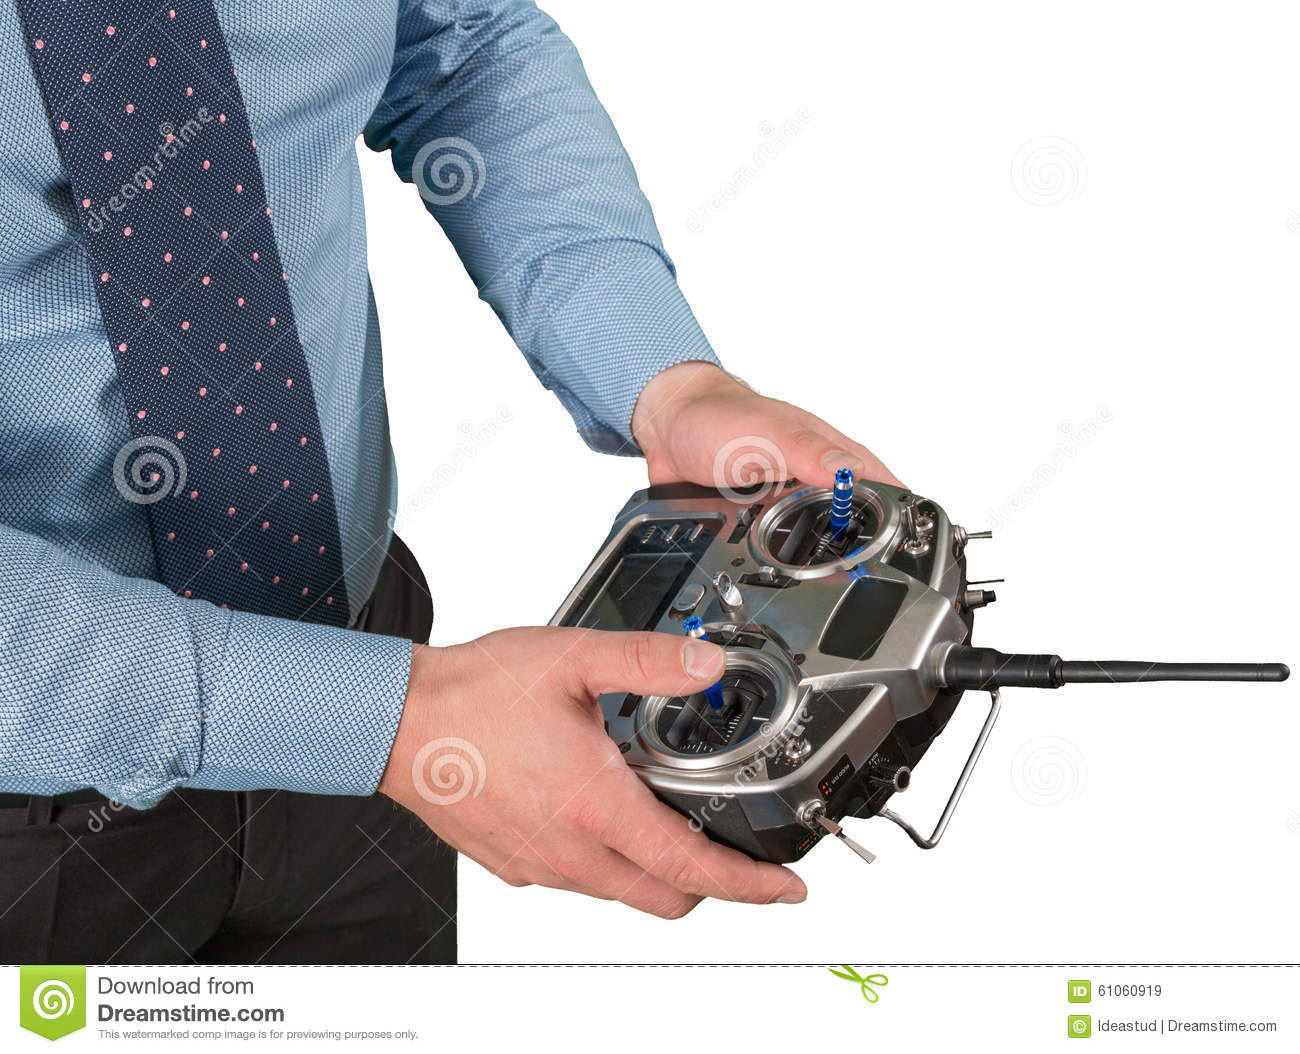 remote controller helicopter with Stock Photo Drone Flight Remote Controller Man S Hands Close Up View White Background Isolated Image61060919 on Dancing Drones additionally 5 Top Remote Control Helicopters 500 additionally Dji Phantom 2 V3 Rtf Uav Drone Quadcopter besides 291151505617 together with Stock Vector People Playing With Outdoor Toys Remote Control Car Plane Helicopter Ship Water Gun Jumper.